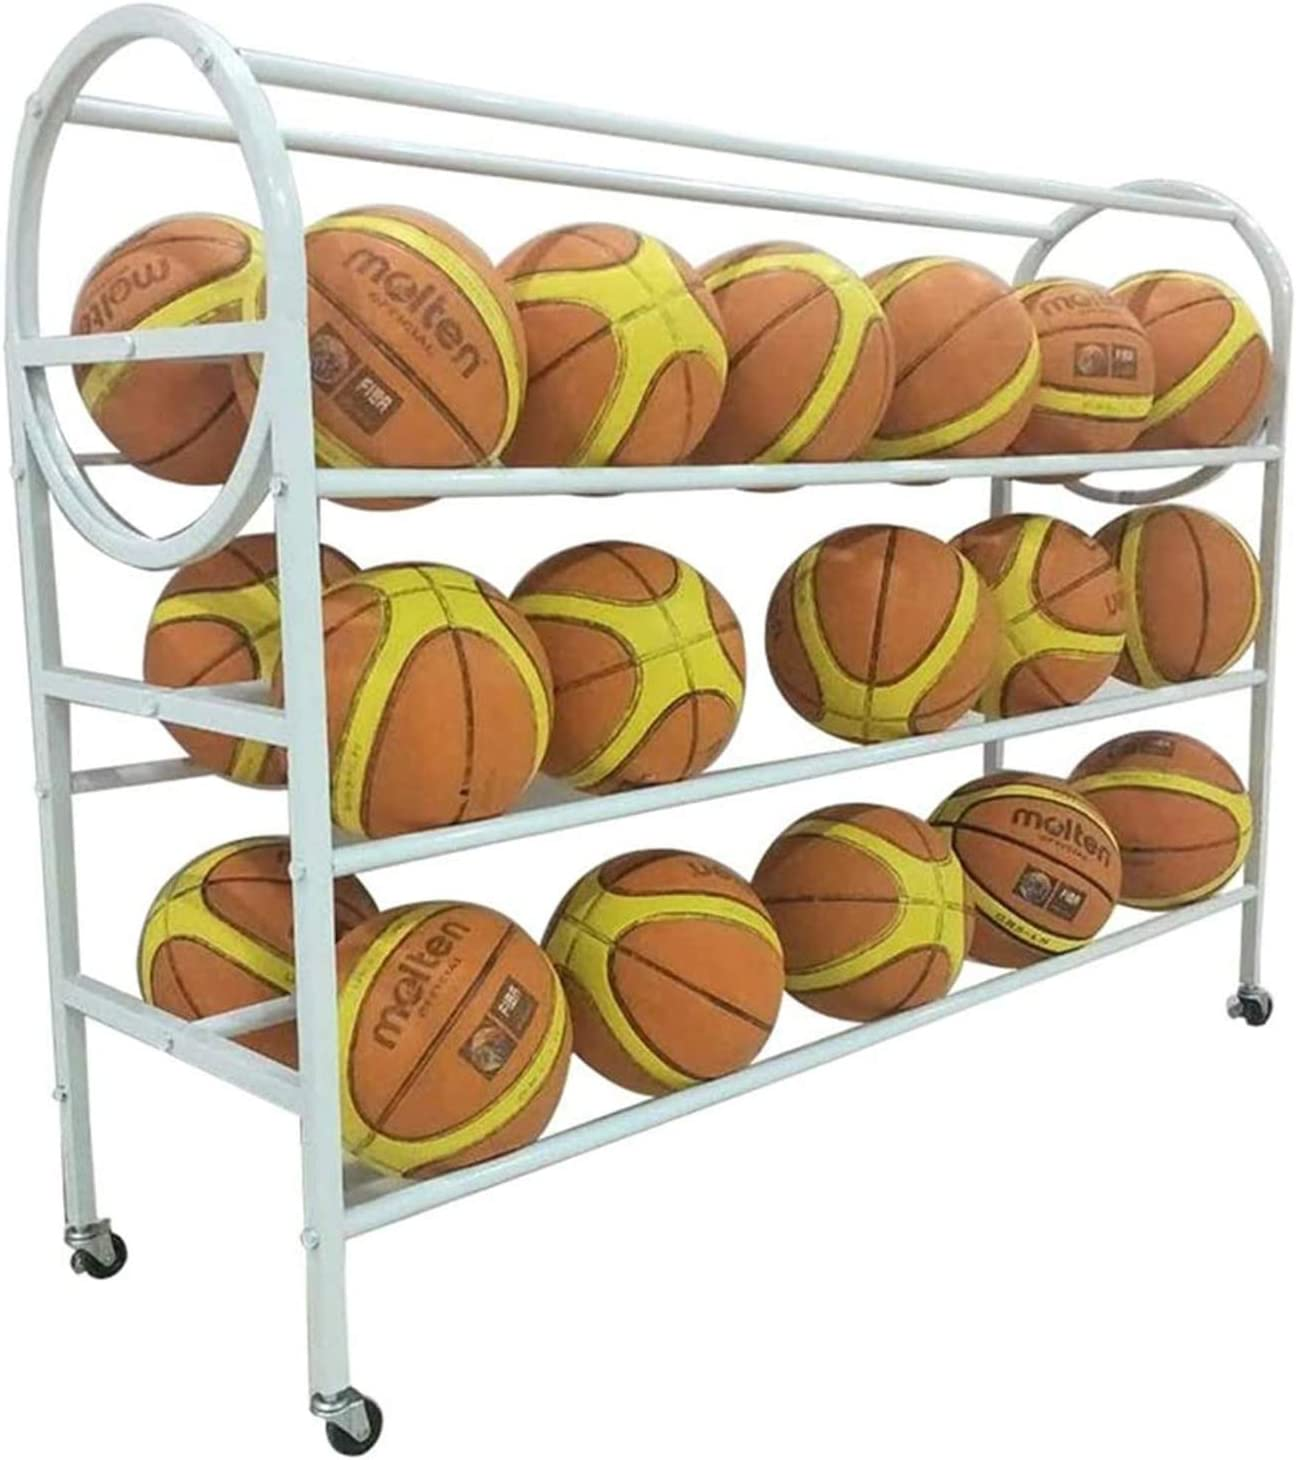 LLFF Sports Ball Rack 35 free 4-Layer Basketball All items in the store Storage Balls